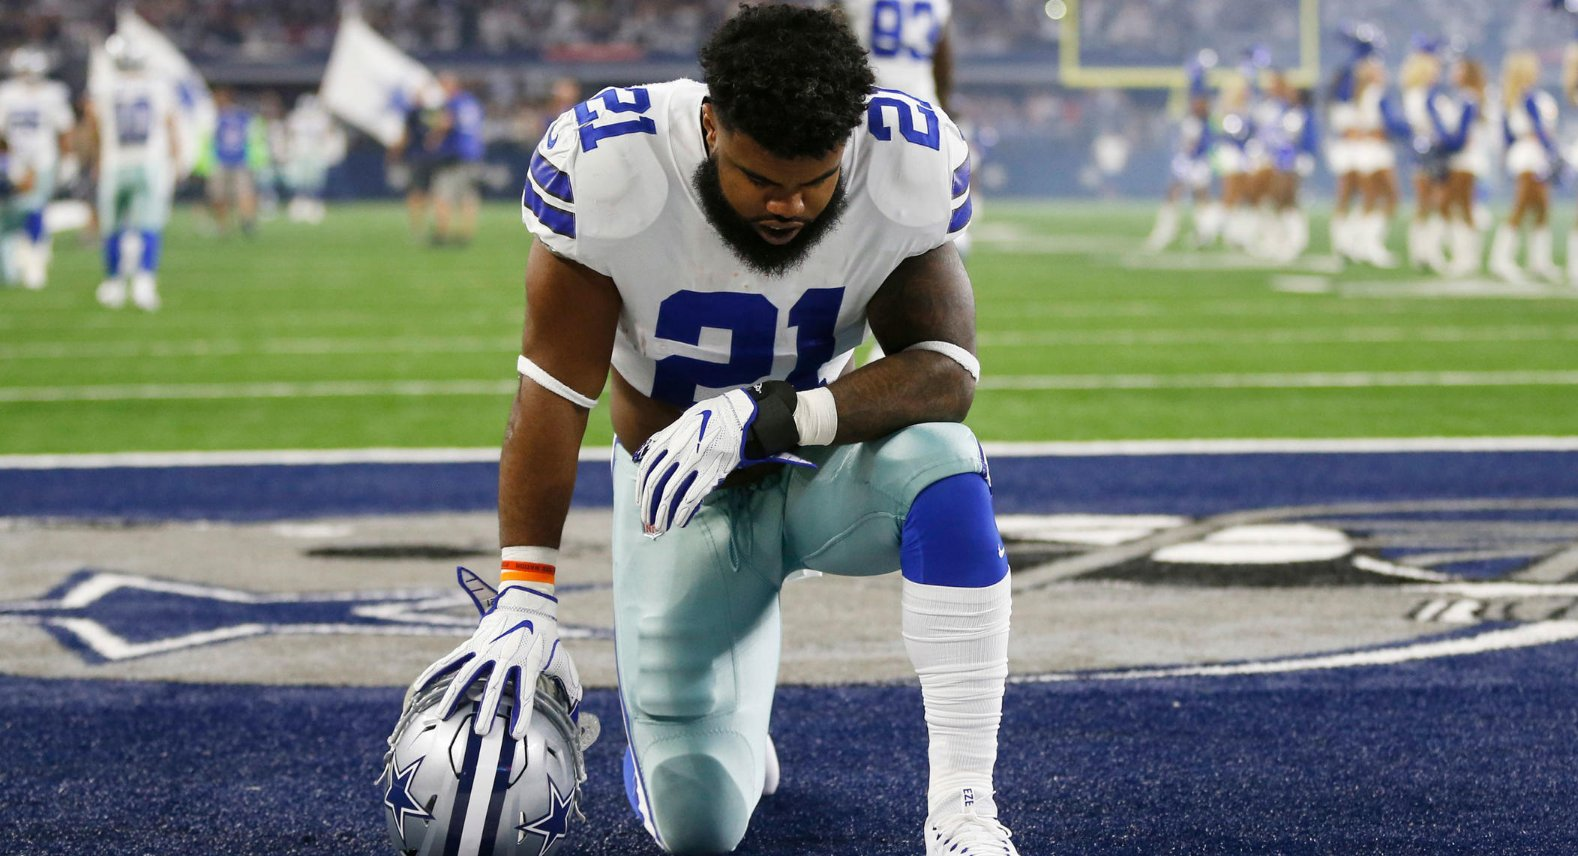 Playing alongside his teammates has kept Ezekiel Elliott focused and persistent.   ��: https://t.co/CCWfIAaji3 https://t.co/mbvmycmykm